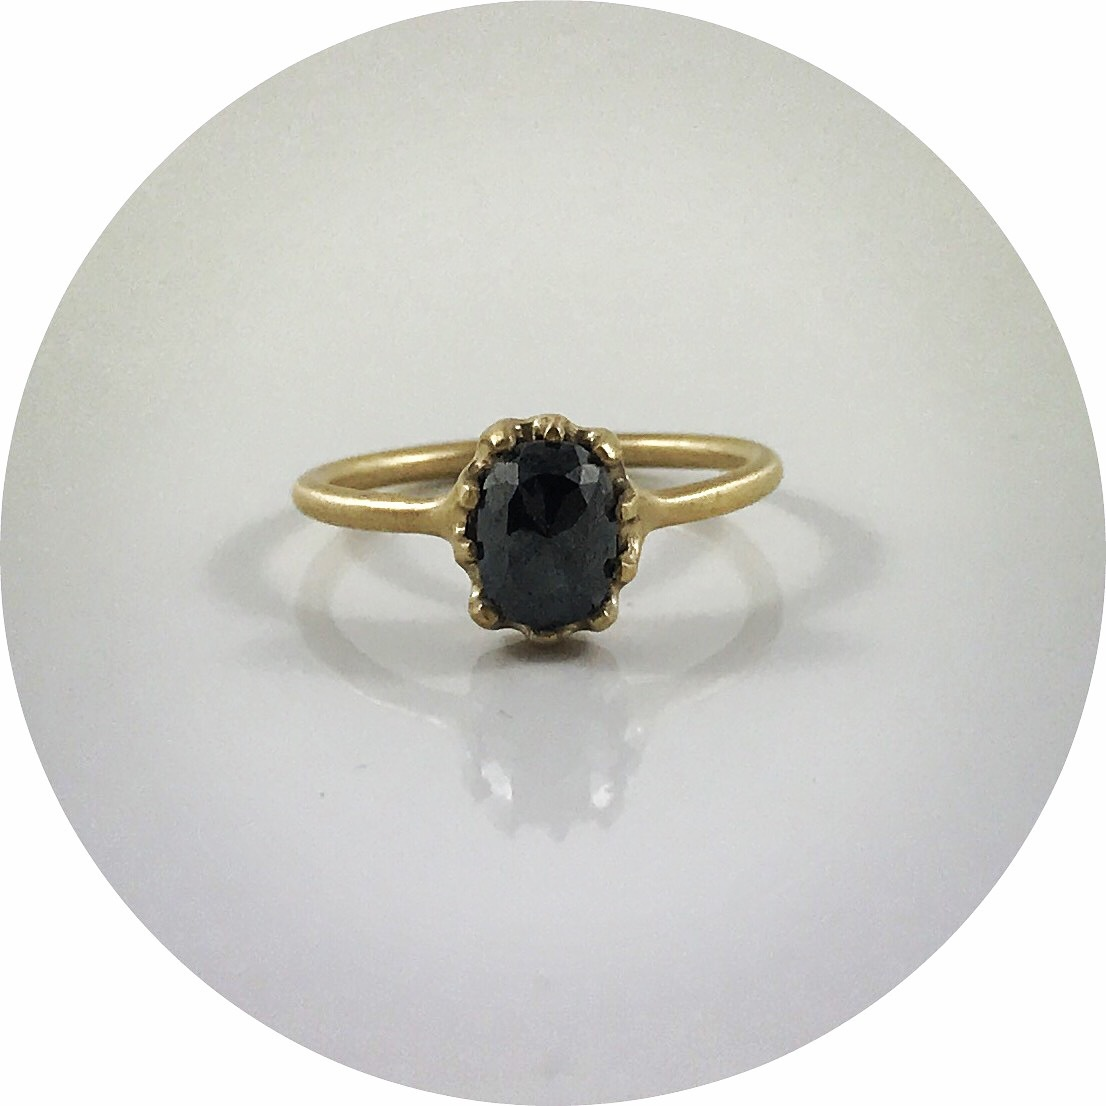 Katie Shanahan - 9ct yellow gold rough diamond ring